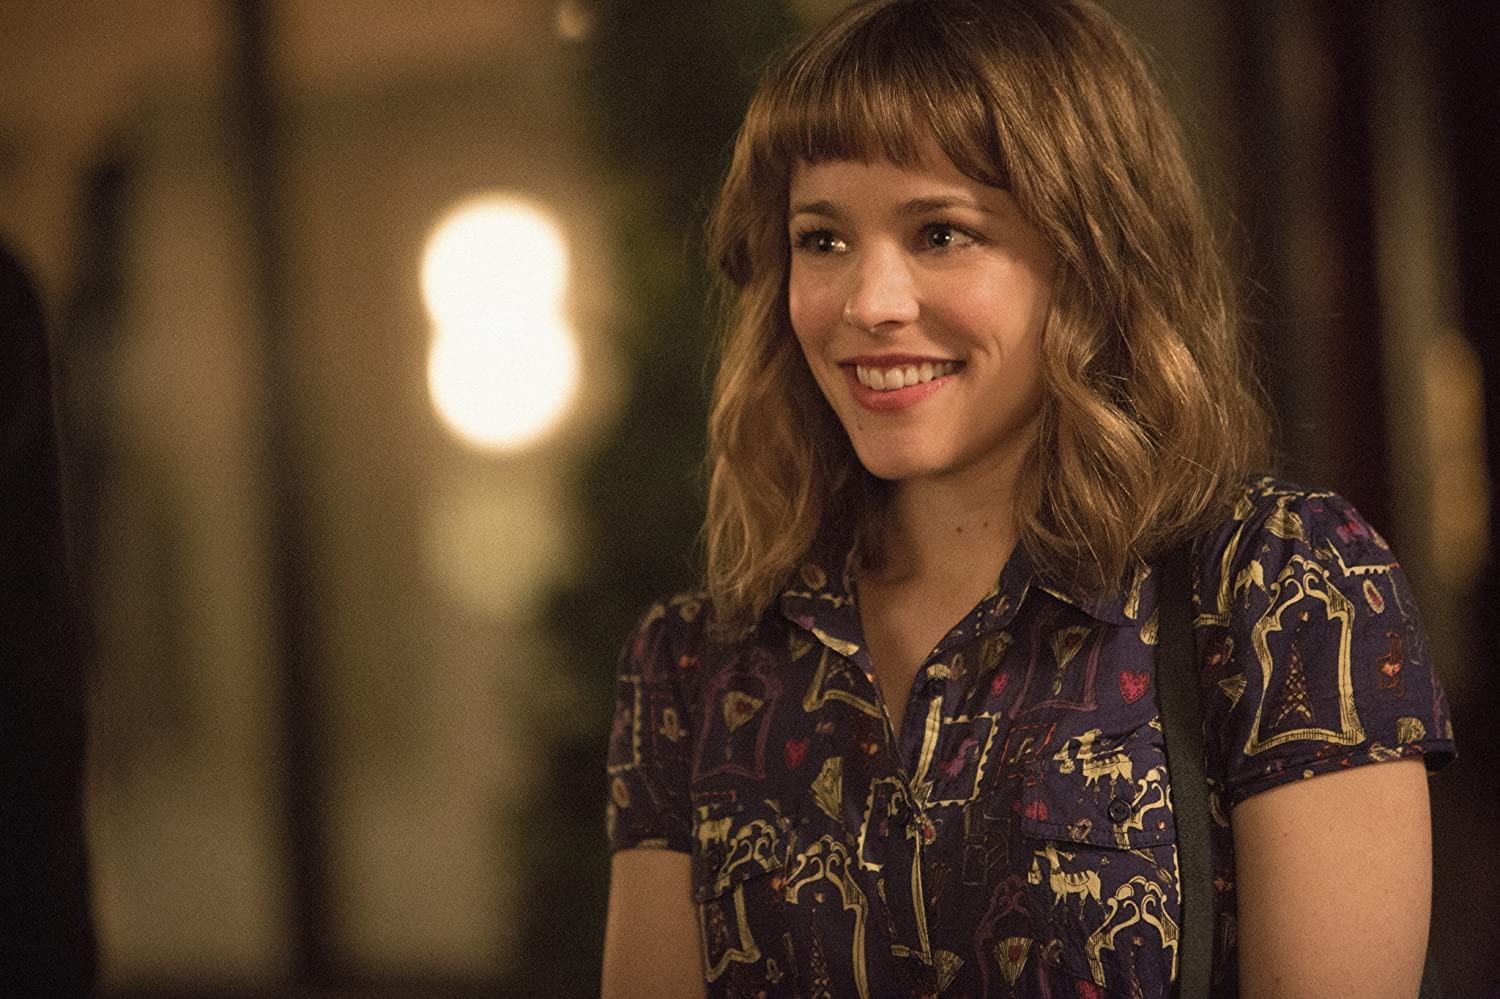 Rachel McAdams in About Time (2013)